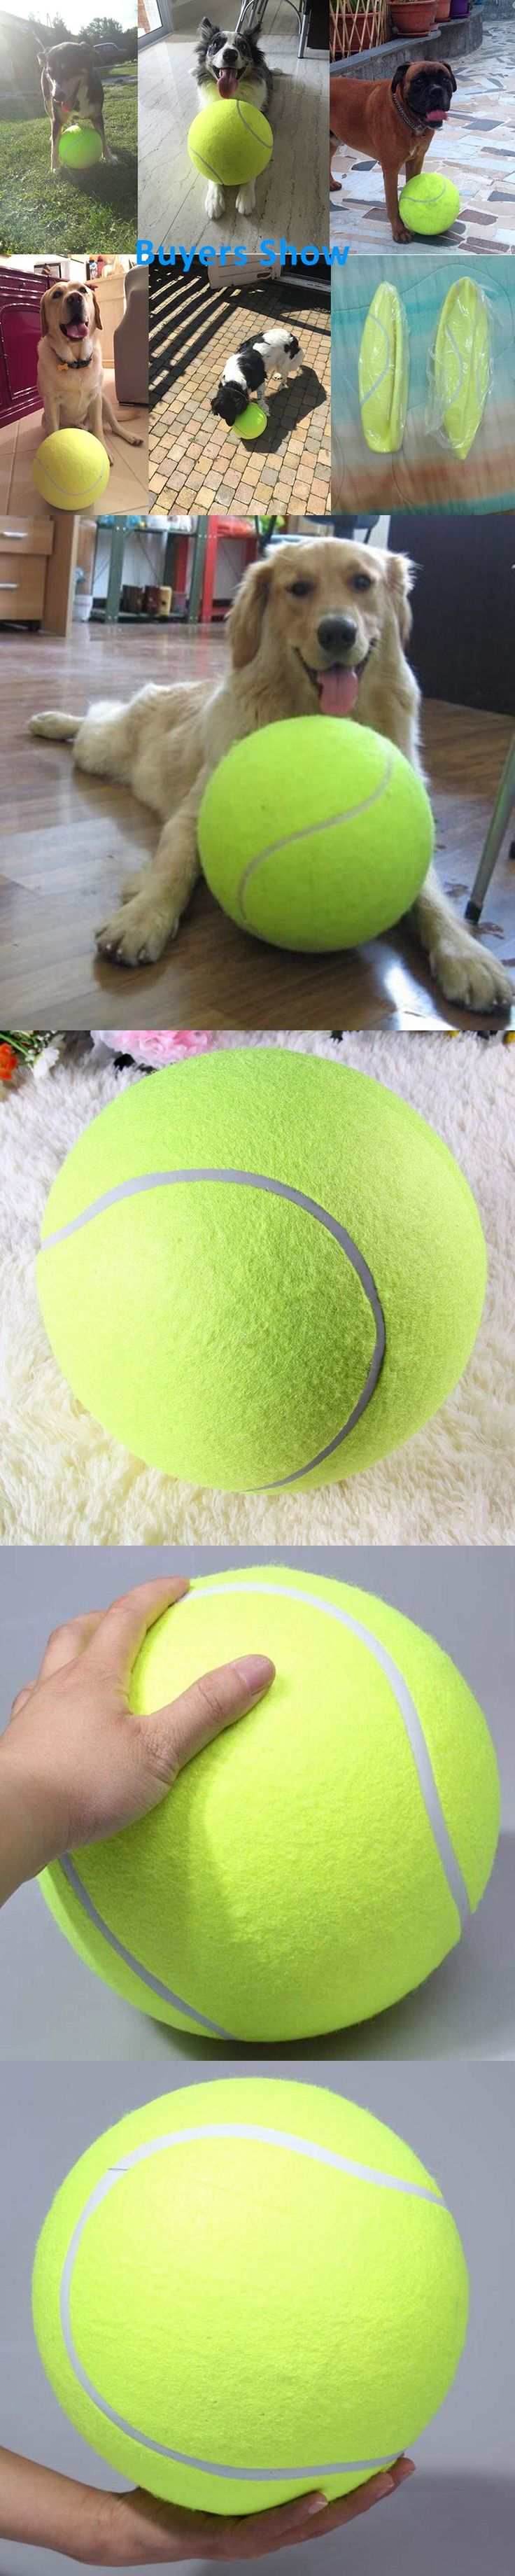 Best 25 Durable dog toys ideas on Pinterest